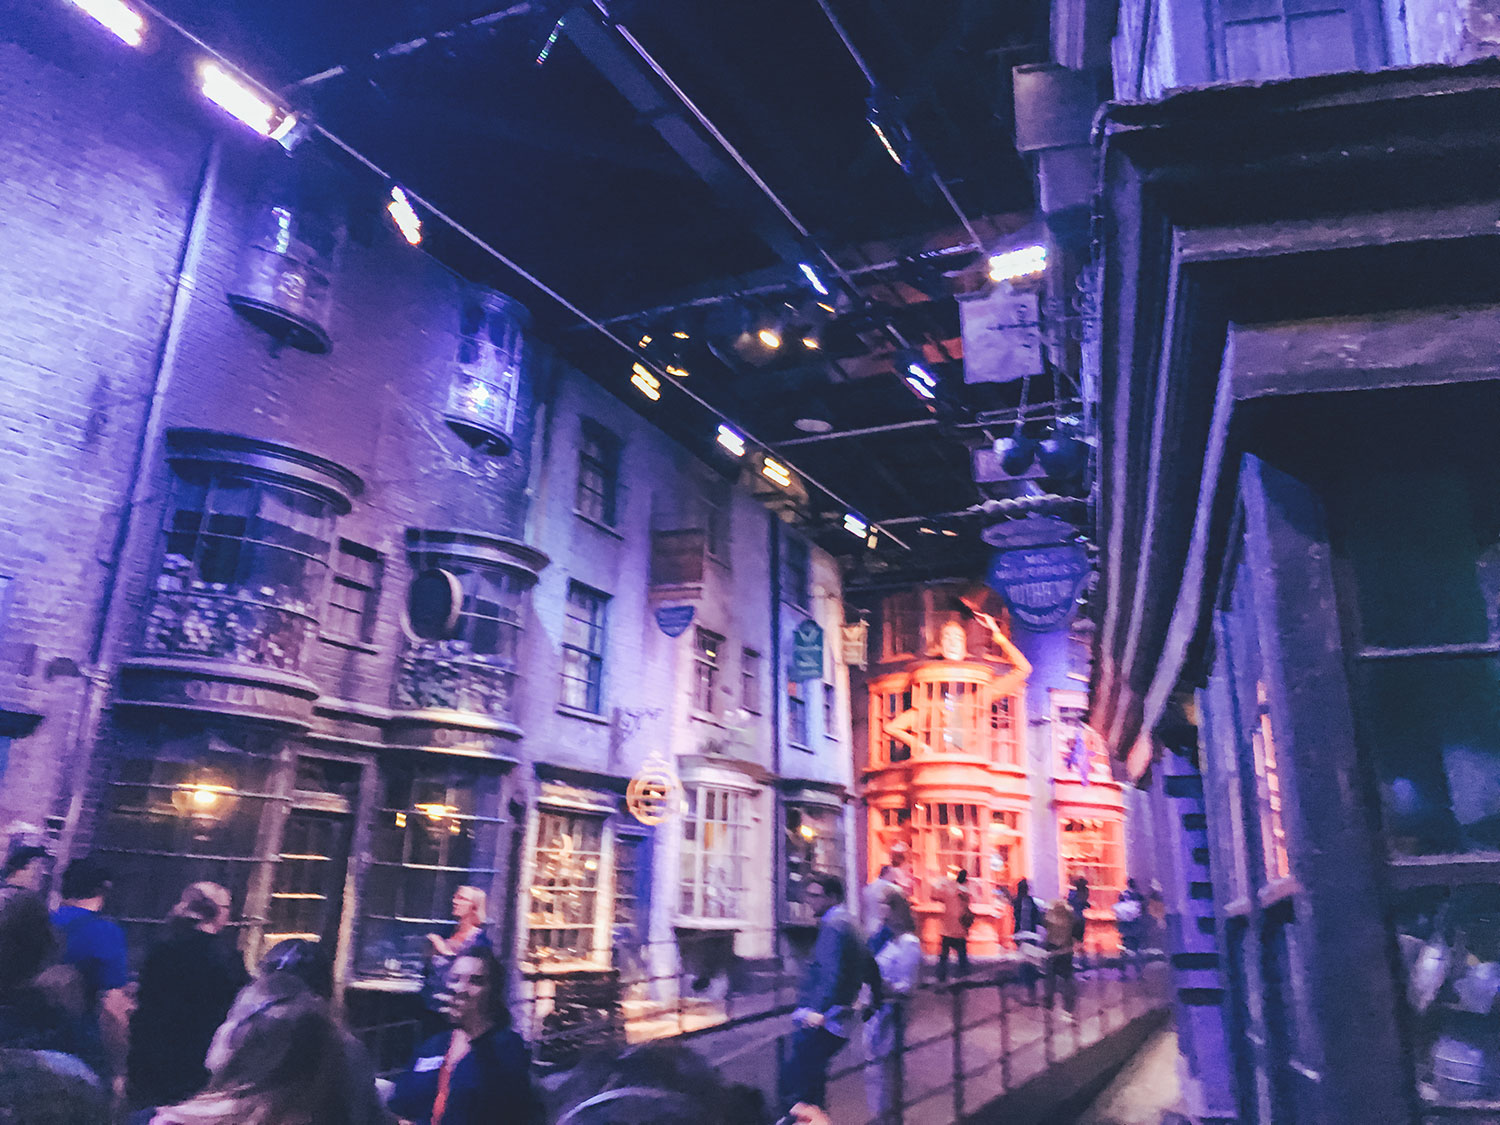 travel blogger, traveling, travel, london, europe, trip, vacation, harry potter, potterhead, harry potter tour, harry potter warner bros tour